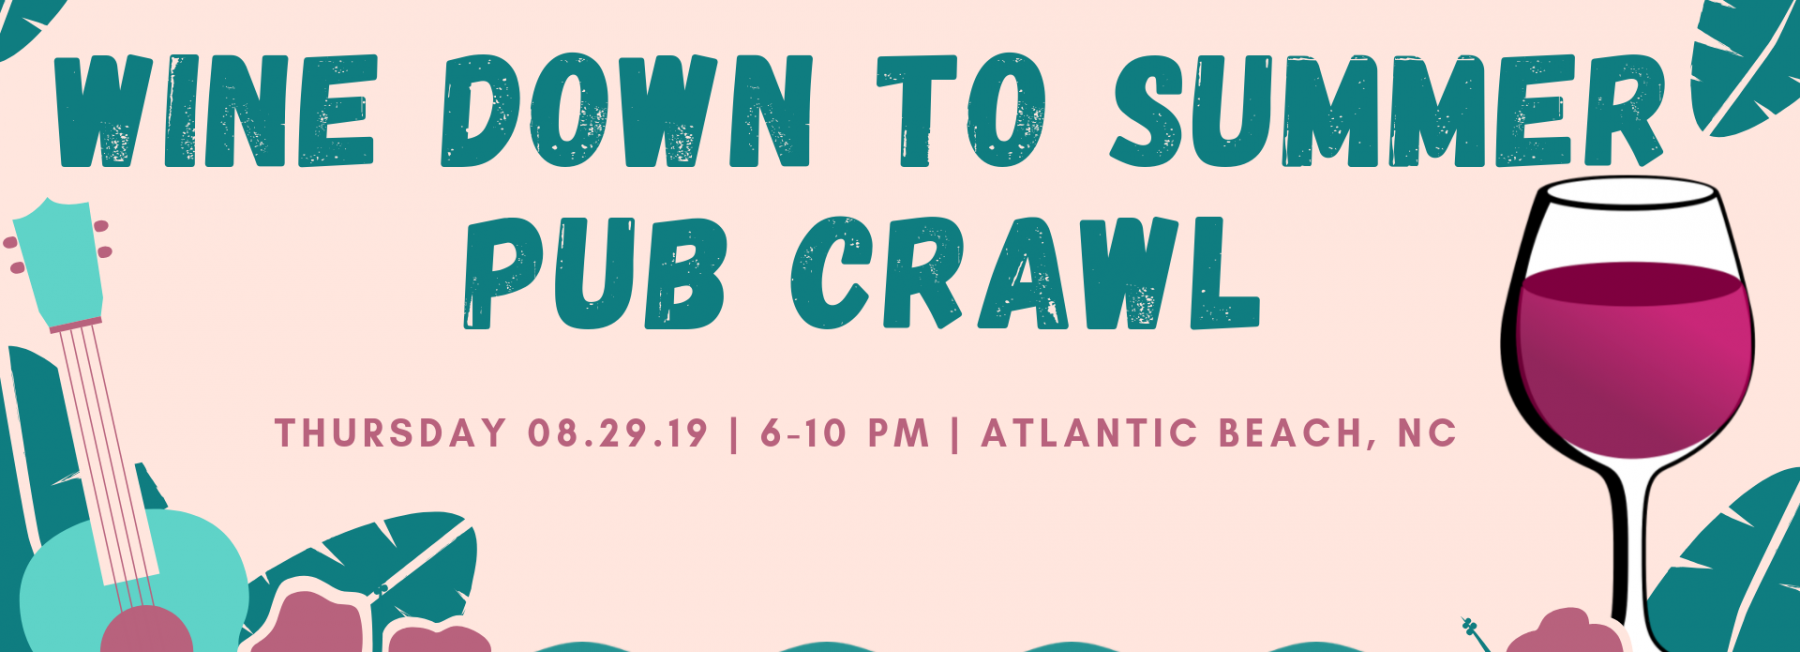 Wine Down to Summer Pub Crawl